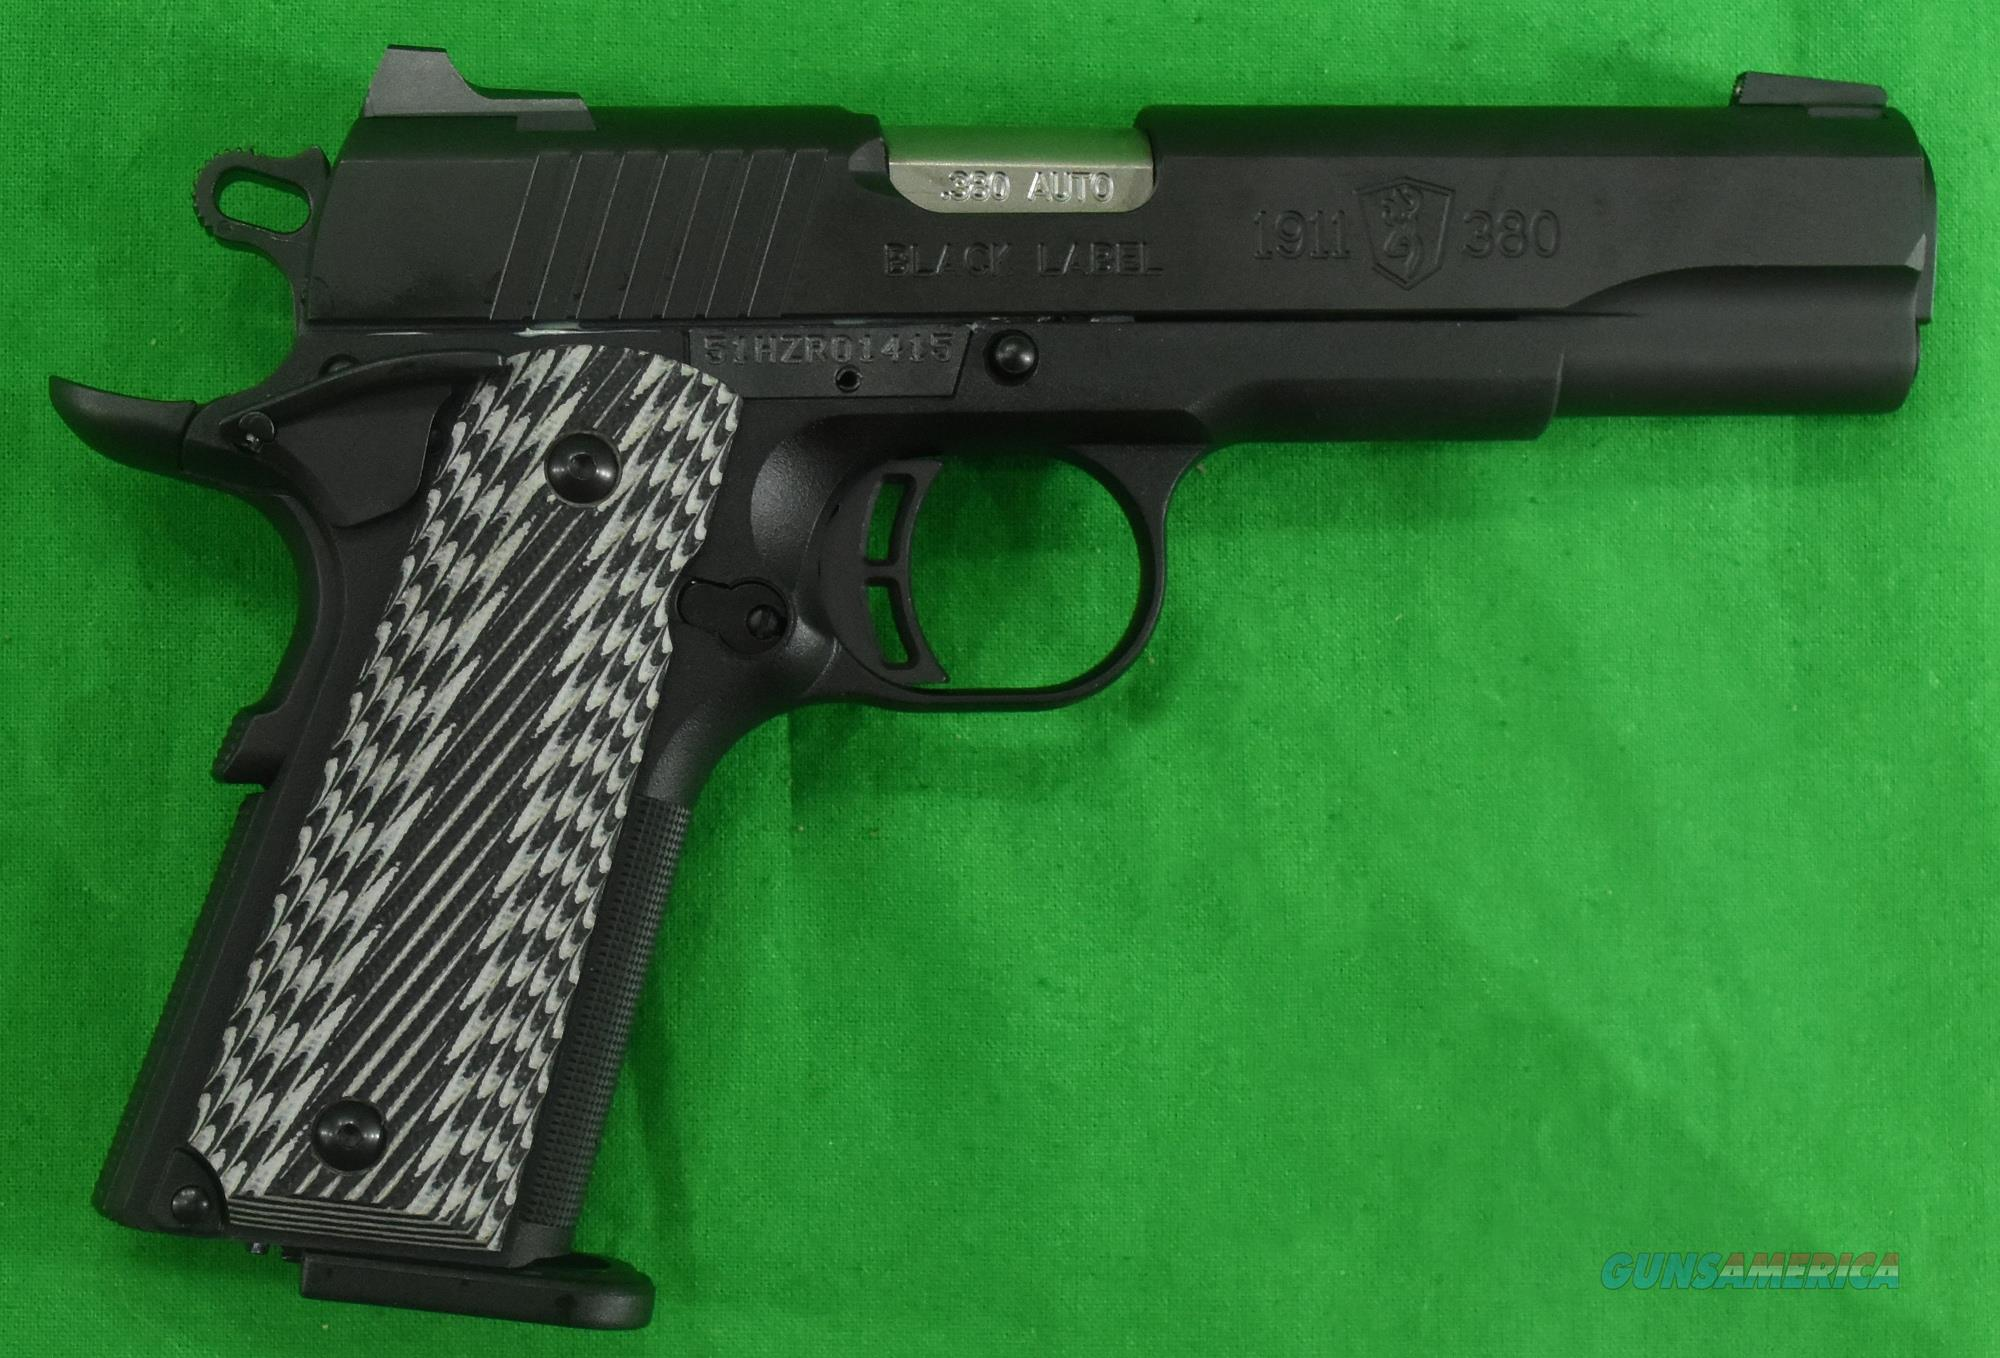 1911 Black Label G10 Nite 380ACP 4.2In  051906492  Guns > Pistols > Browning Pistols > Other Autos